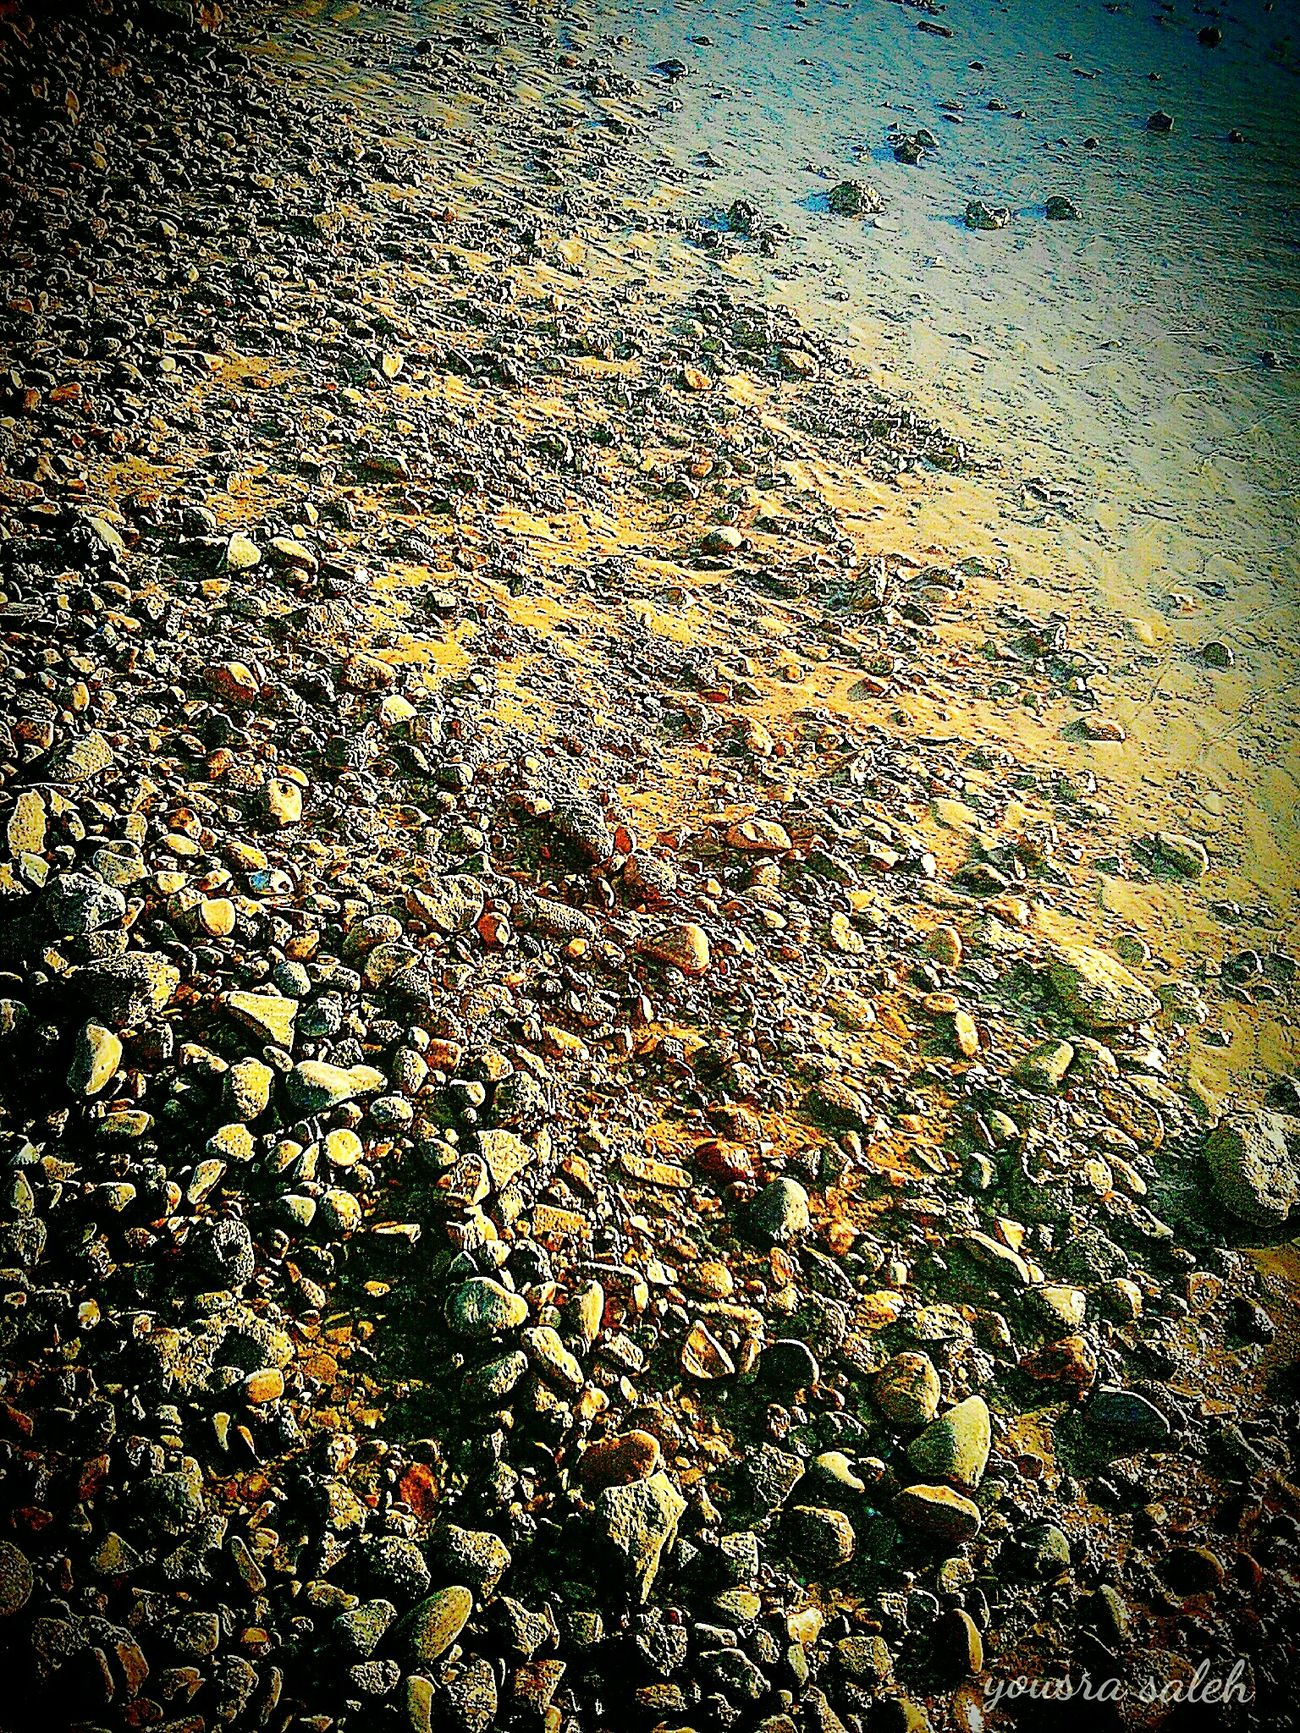 Stones Stones And Pebbles Stones & Water Stone - Object Stonescape Sea Beach Beach Life Sand Sand & Sea Sand Beach Water Sandstone Golden Sand Nature Nature Photography Nature Beauty Nature_collection Naturelovers Beauty In Nature Taking Photos Smartphonephotography Mobile Photography Ras Sudr Egypt love to take photos ❤ Live For The Story